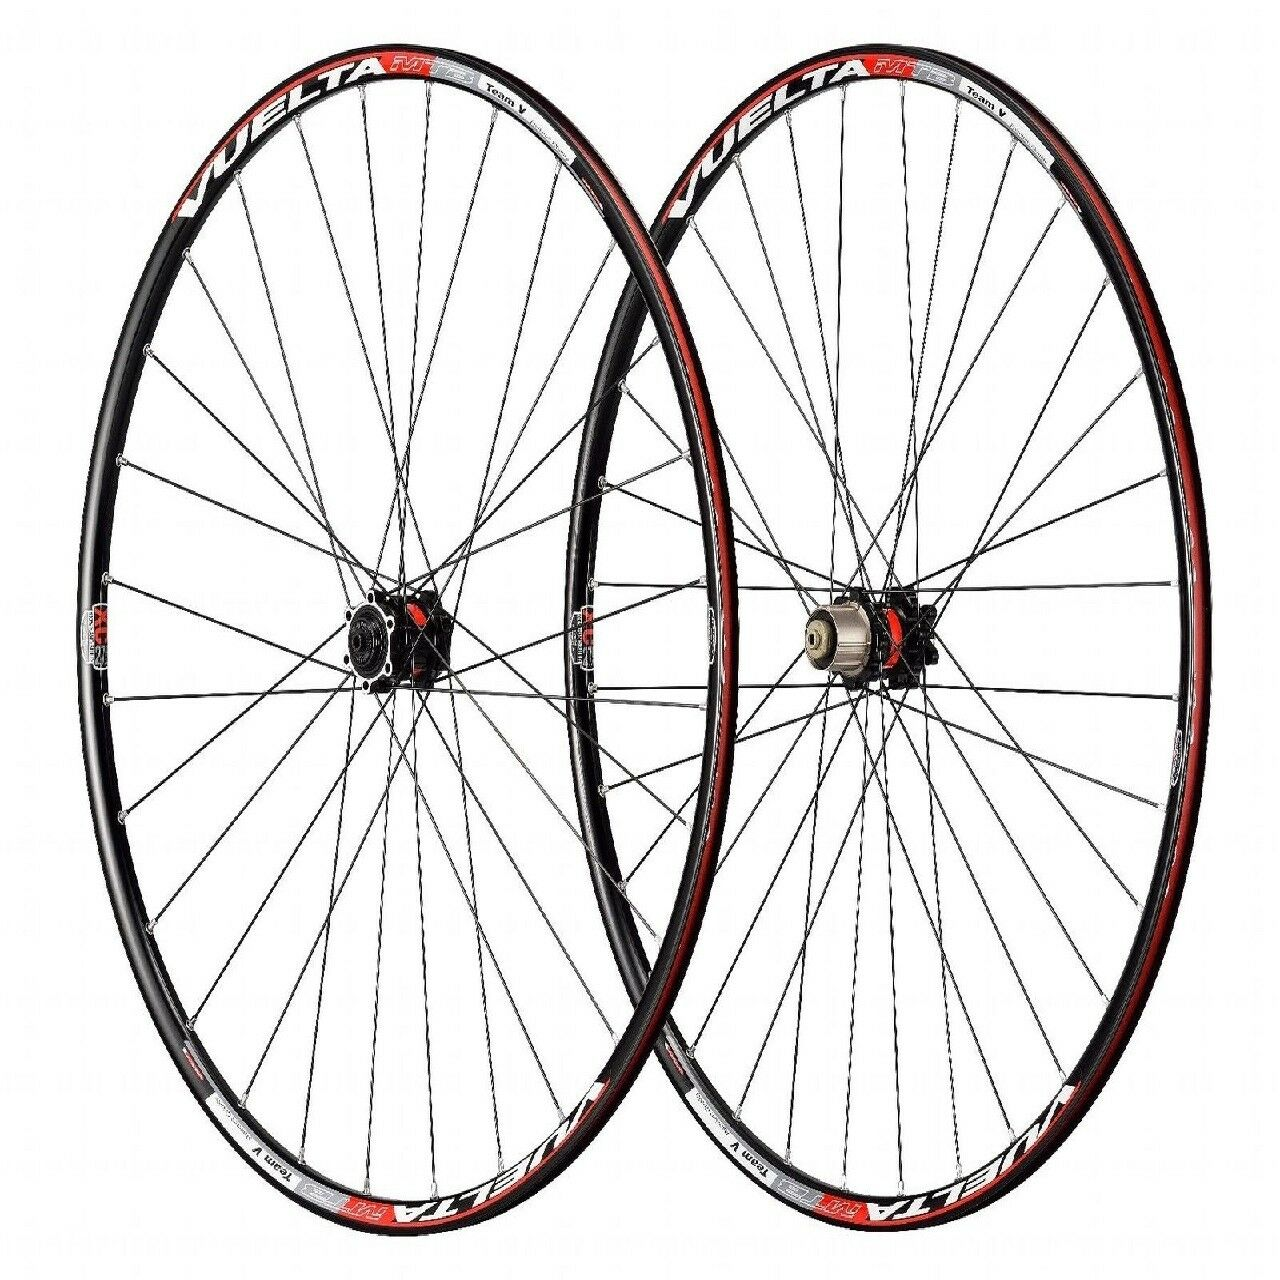 Vuelta Alloy 28H 28H Team V 27.5 6-bolt disc brake 10 speed Wheelset 27.5  blk